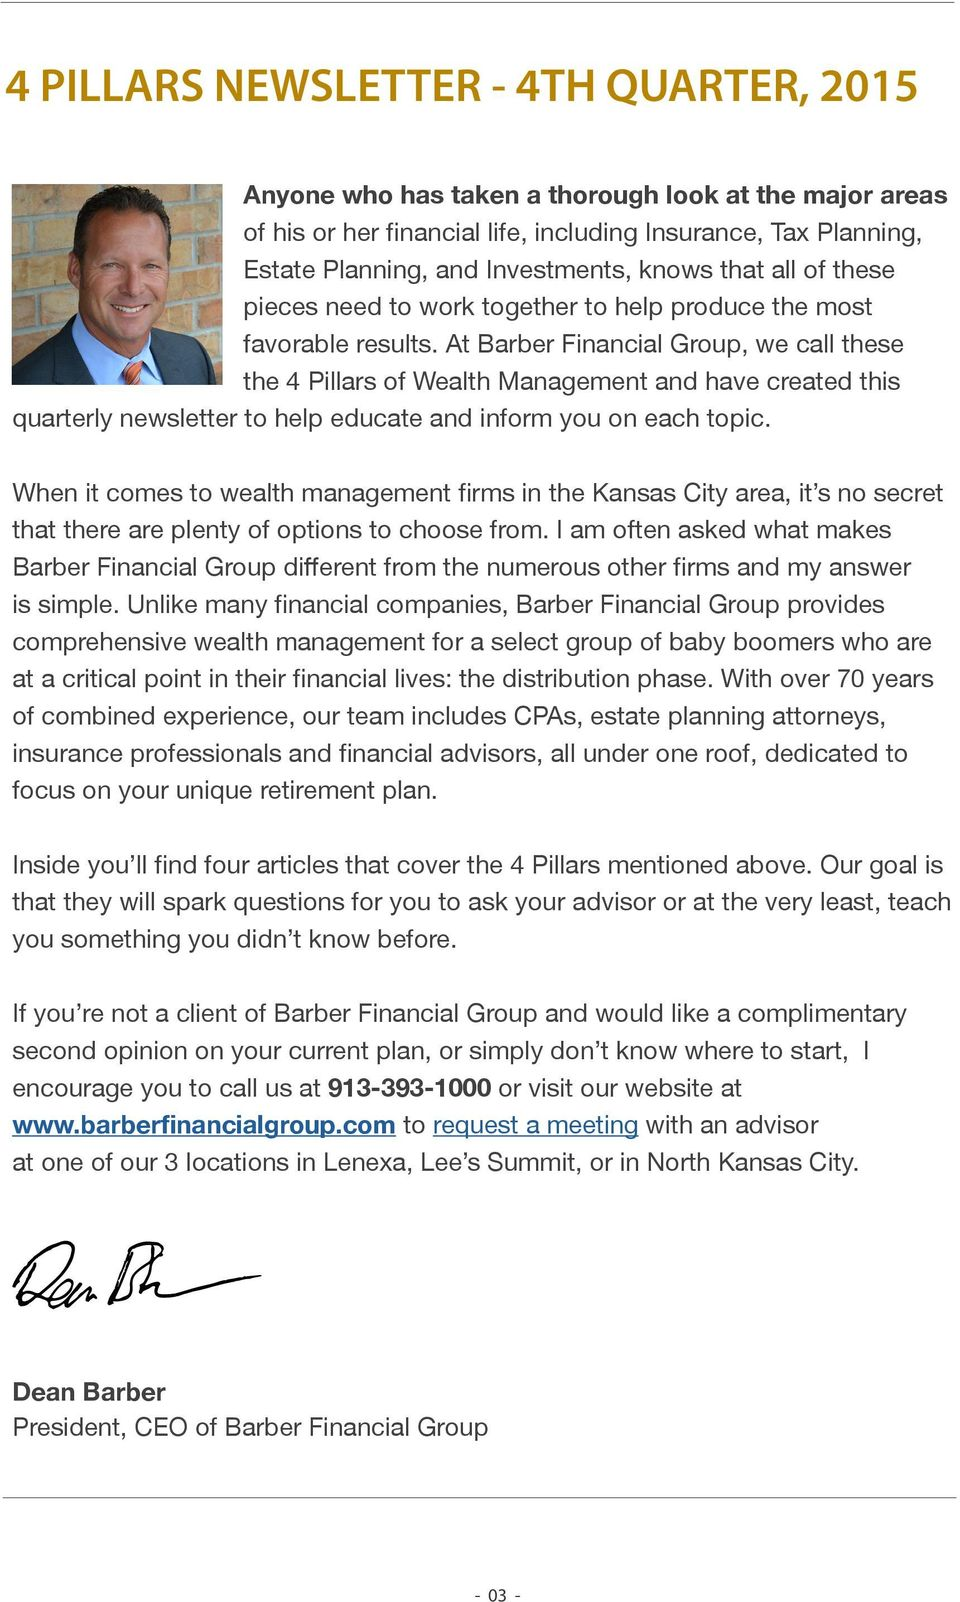 Barber Financial : At Barber Financial Group, we call these the 4 Pillars of Wealth ...